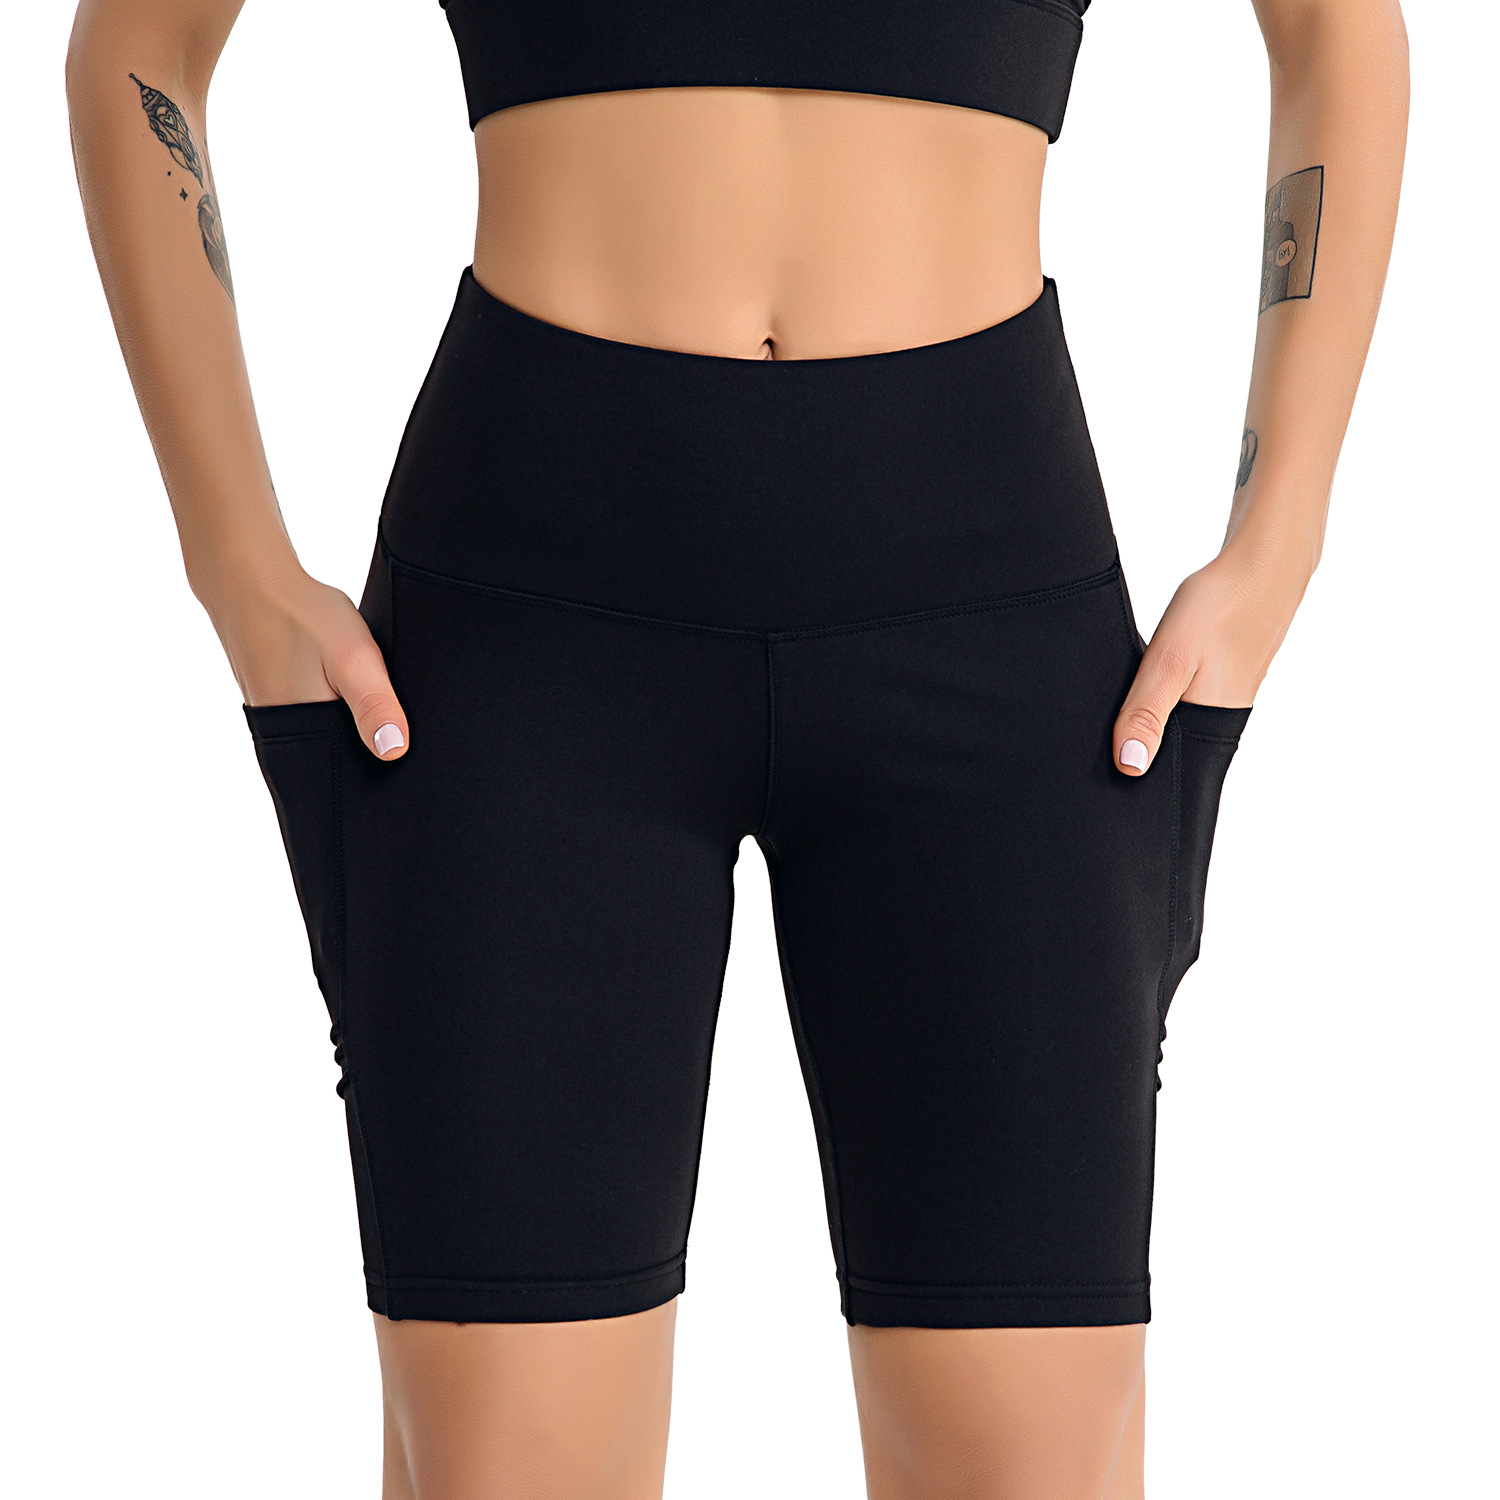 Women's High Waist Workout Yoga Running Compression Shorts with Side Pockets